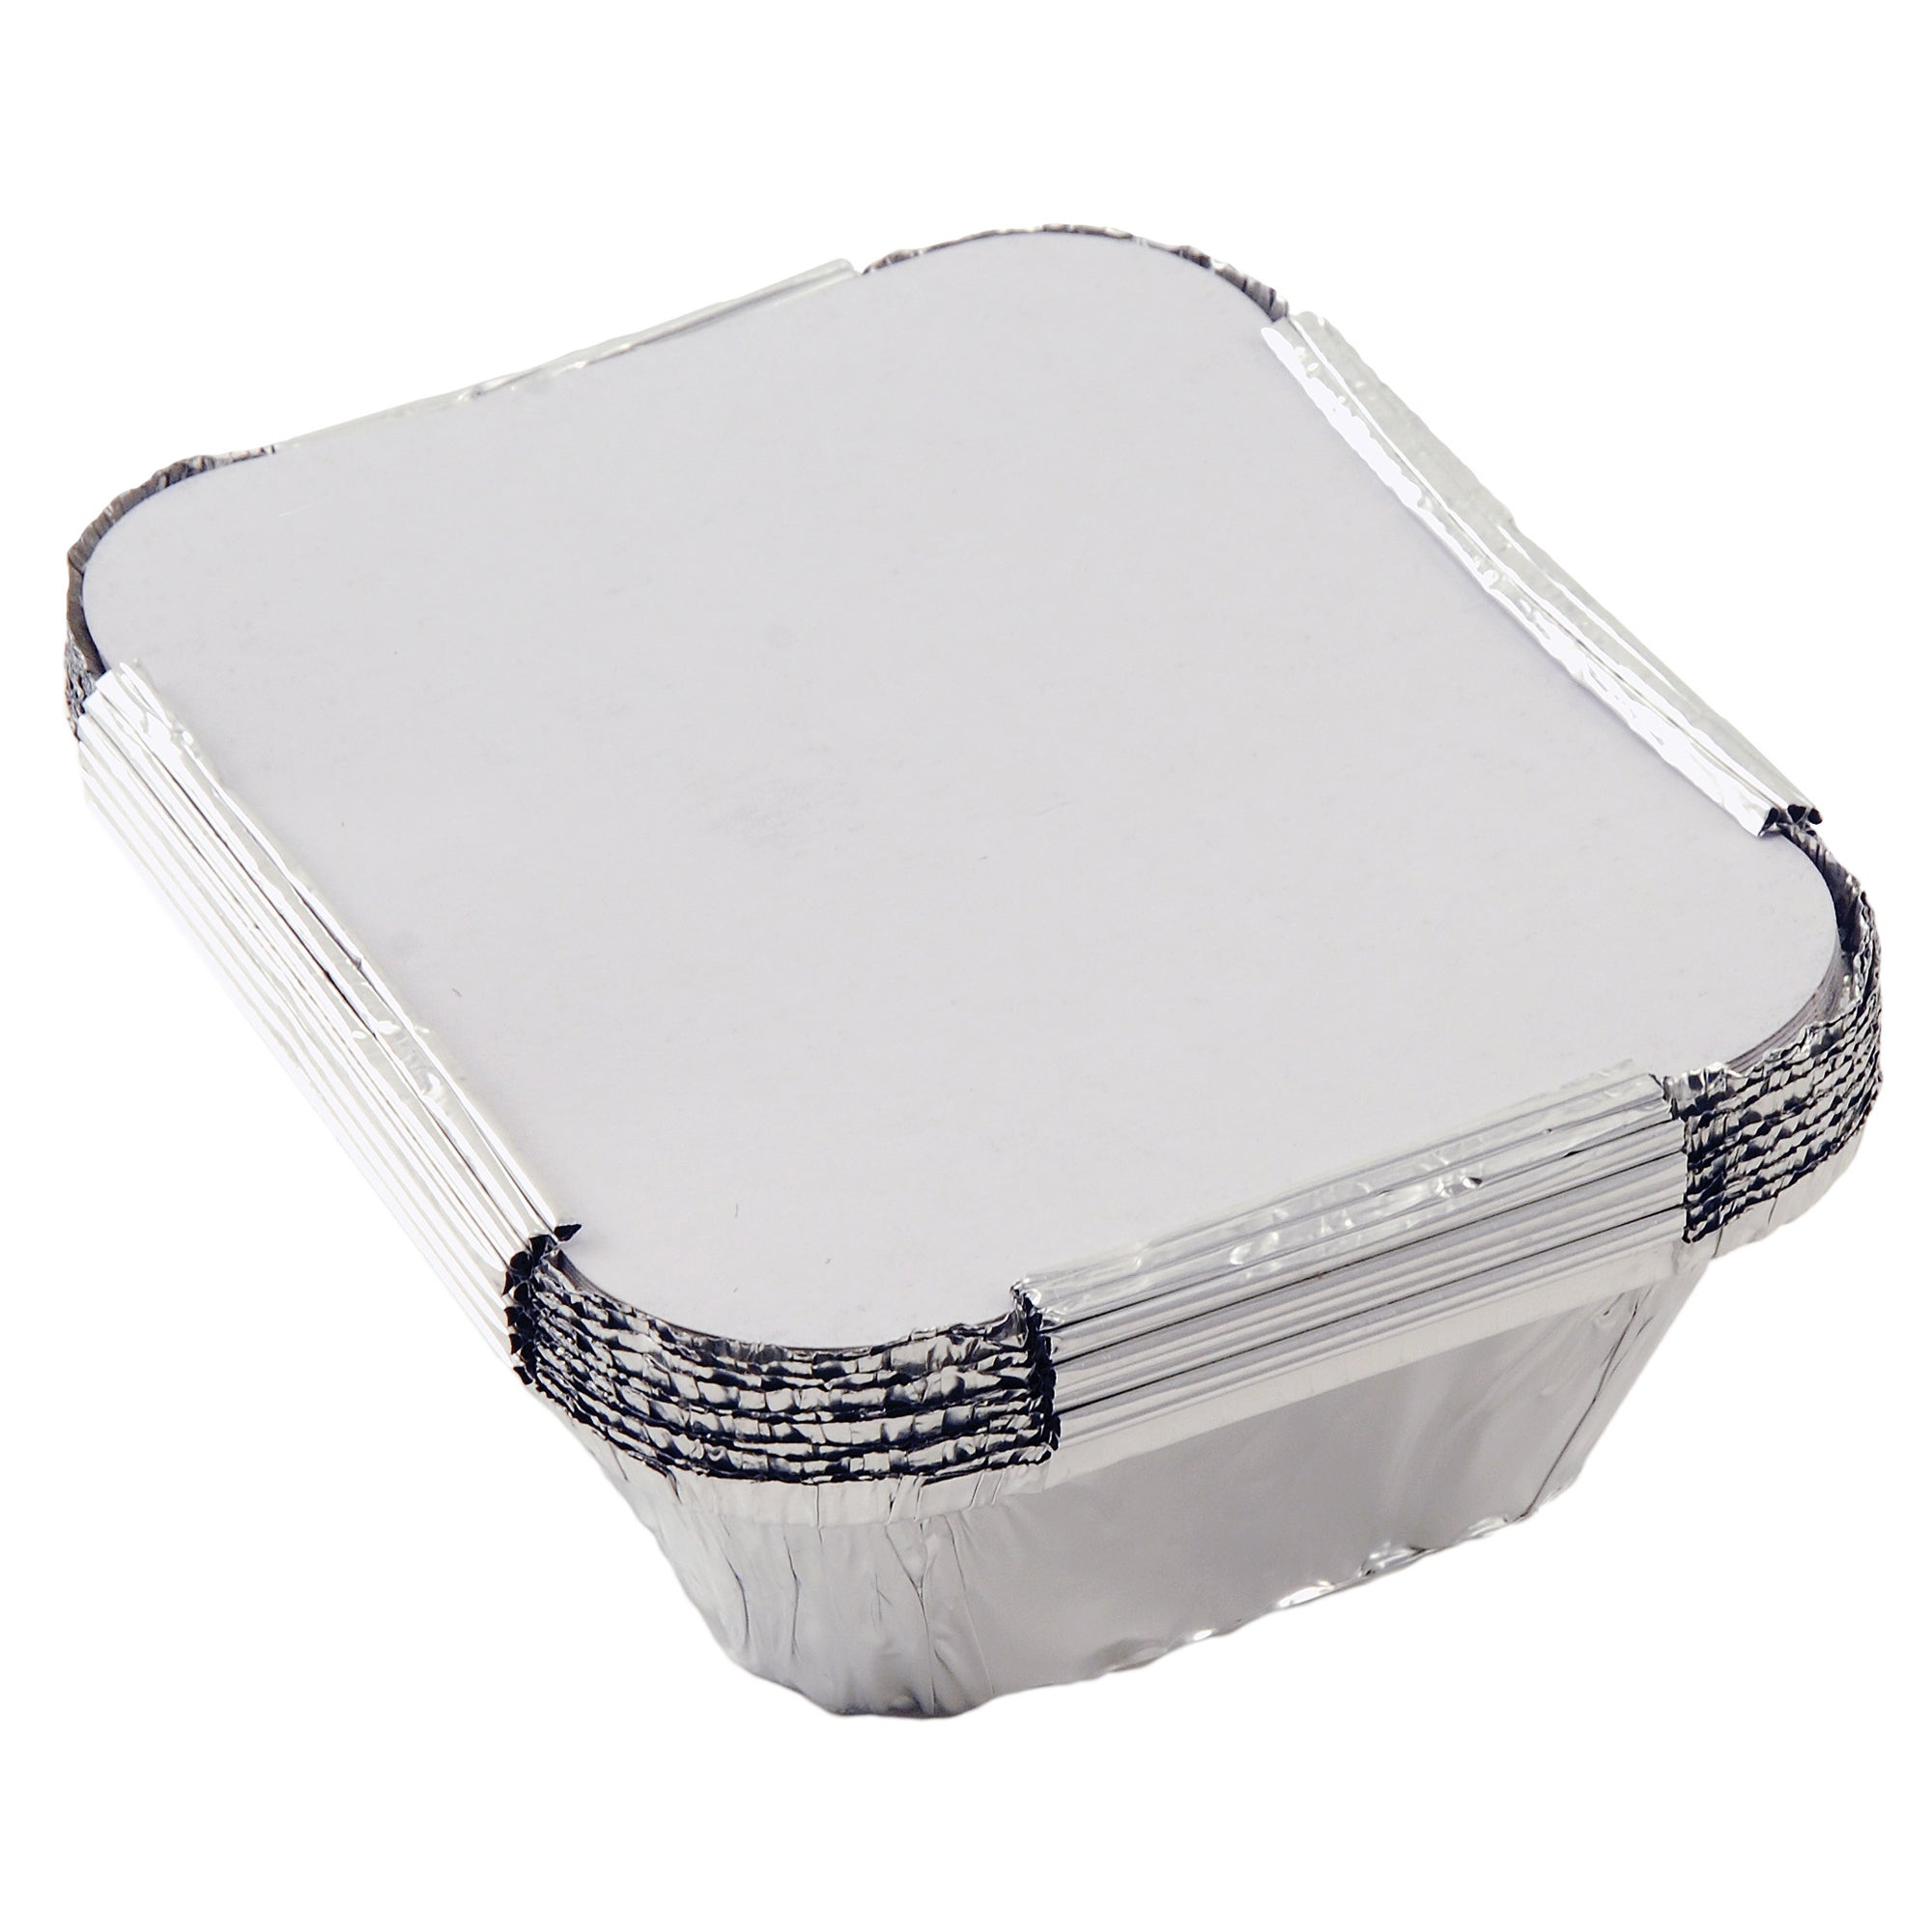 Tala Pack of 10 Foil Containers